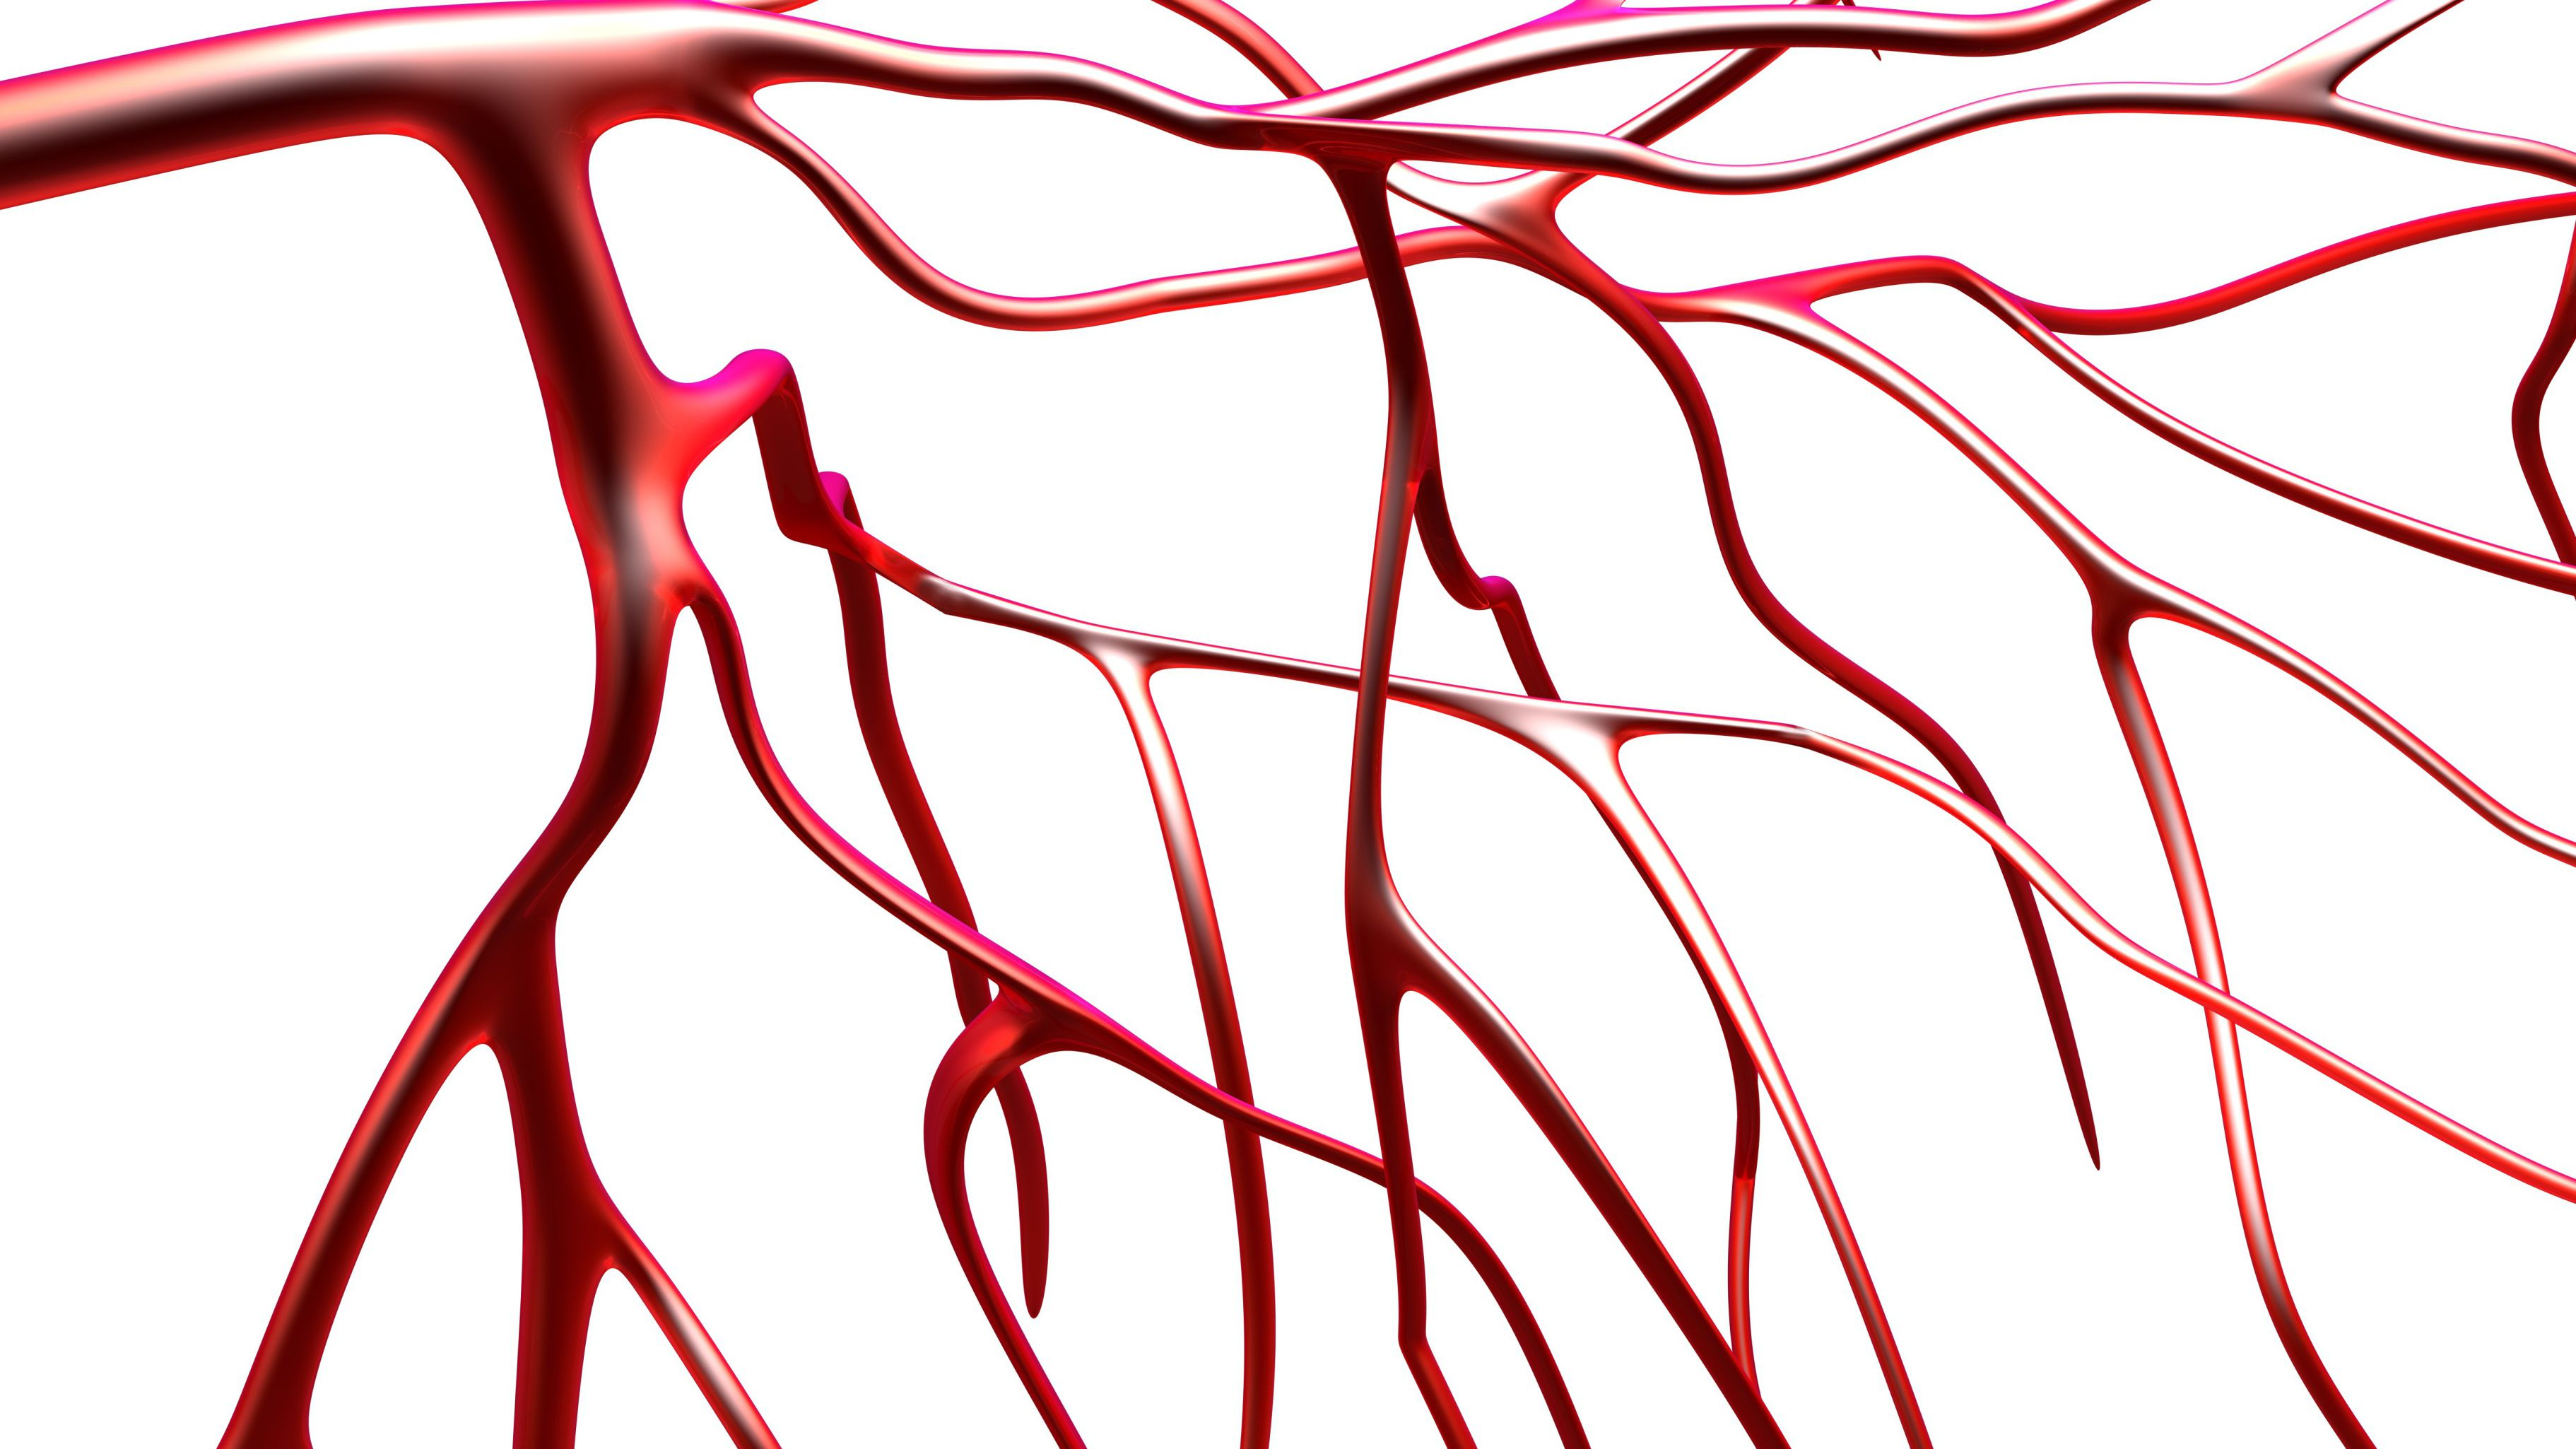 Symptoms of Endothelial Dysfunction